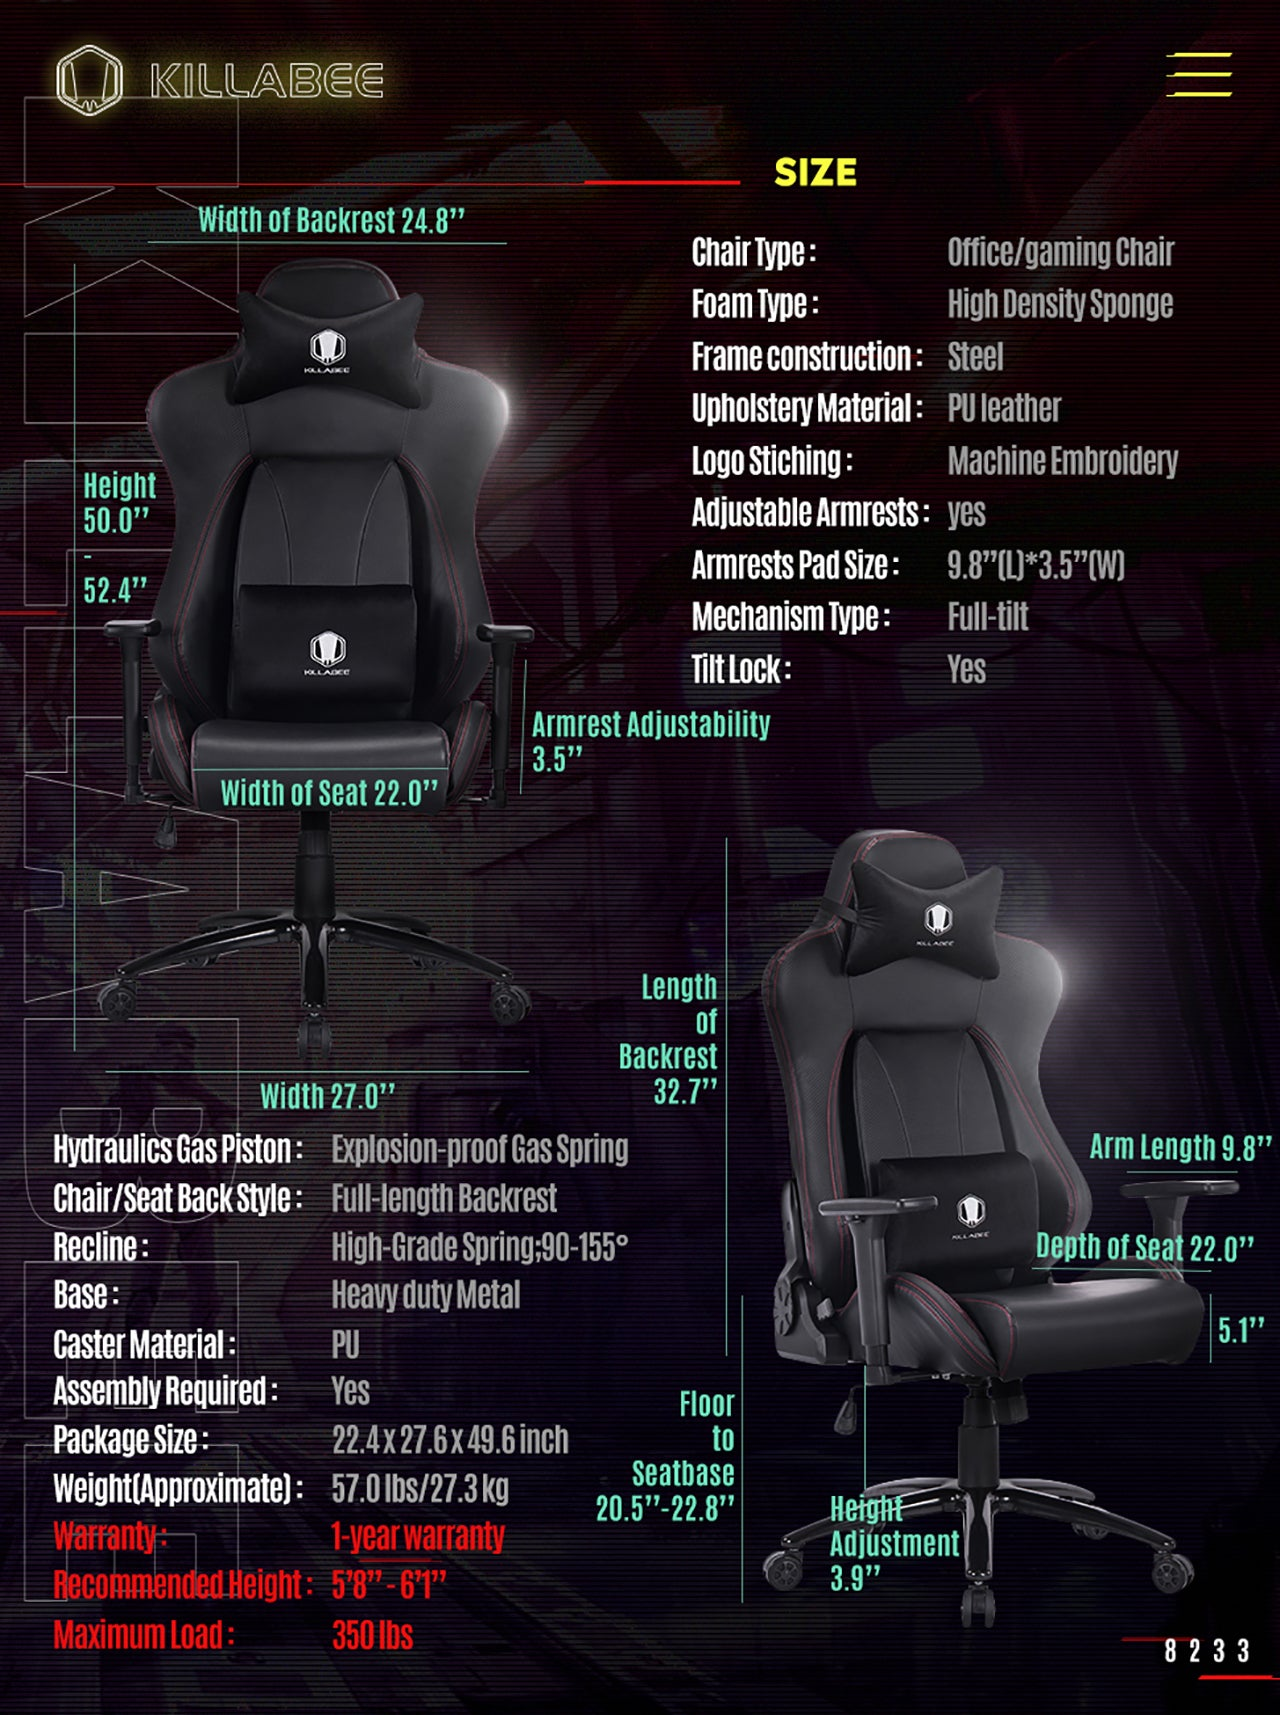 KILLABEE BIG AND TALL GAMING CHAIR 8233 BLACK SPECIFICATION